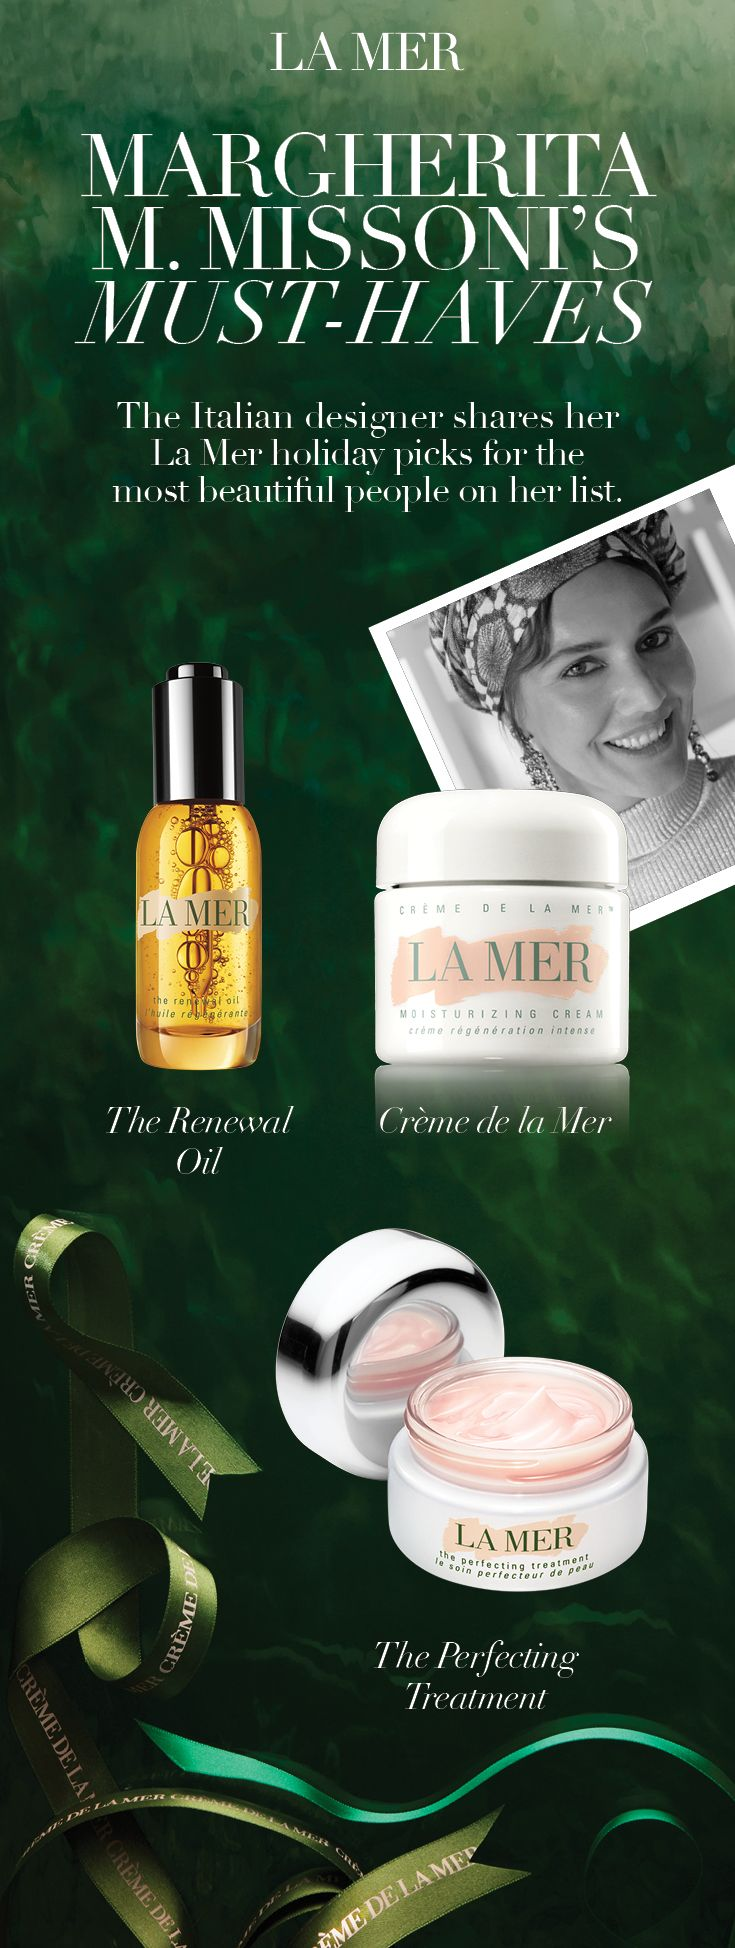 The Italian designer shares her La Mer holiday picks for the most beautiful people on her list. FOR MOM: Crème de La Mer. Legendary moisture for a legendary ...